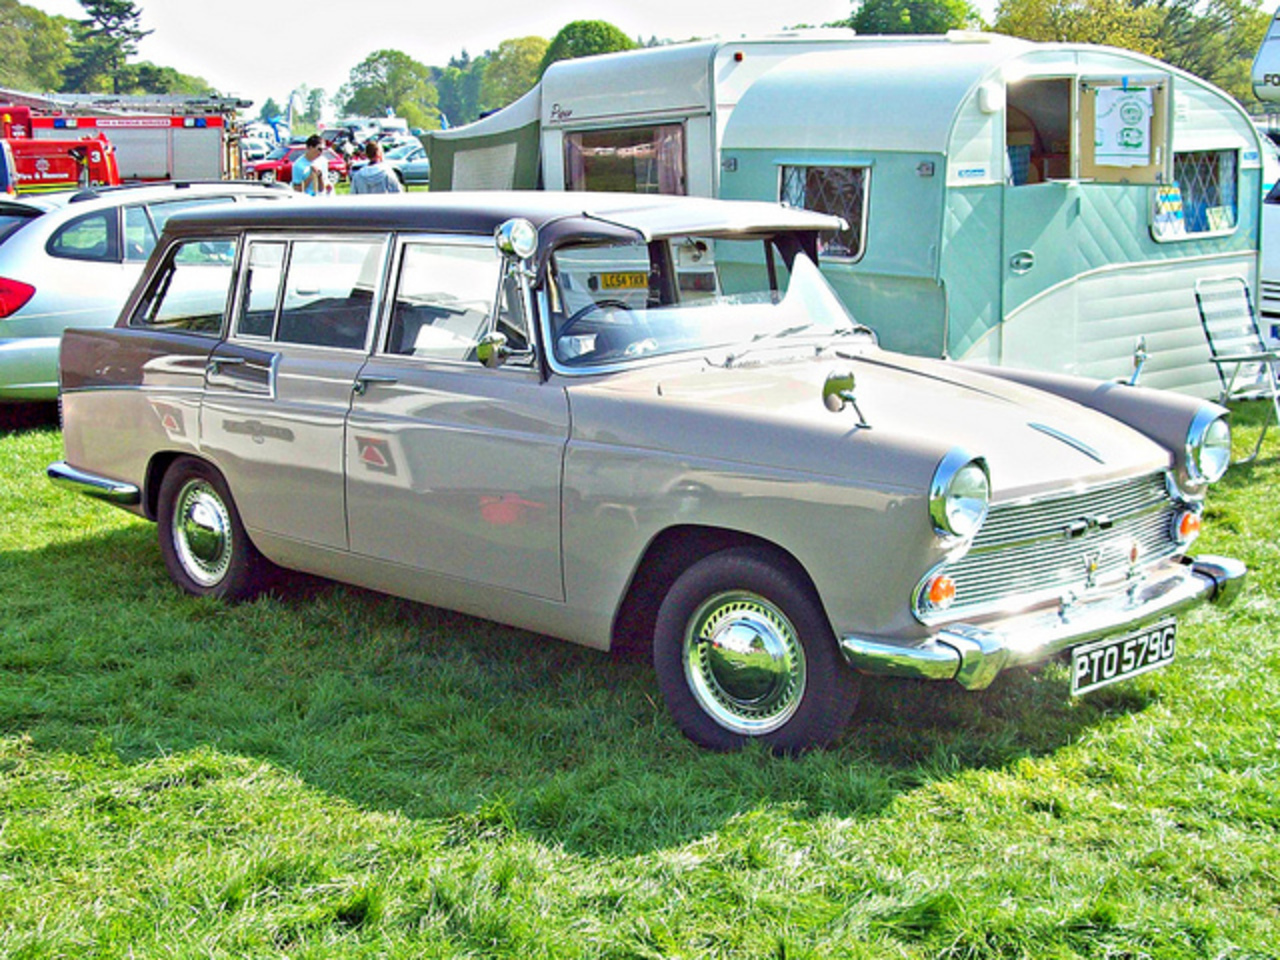 44 Austin A60 Estate (1968) | Flickr - Photo Sharing!